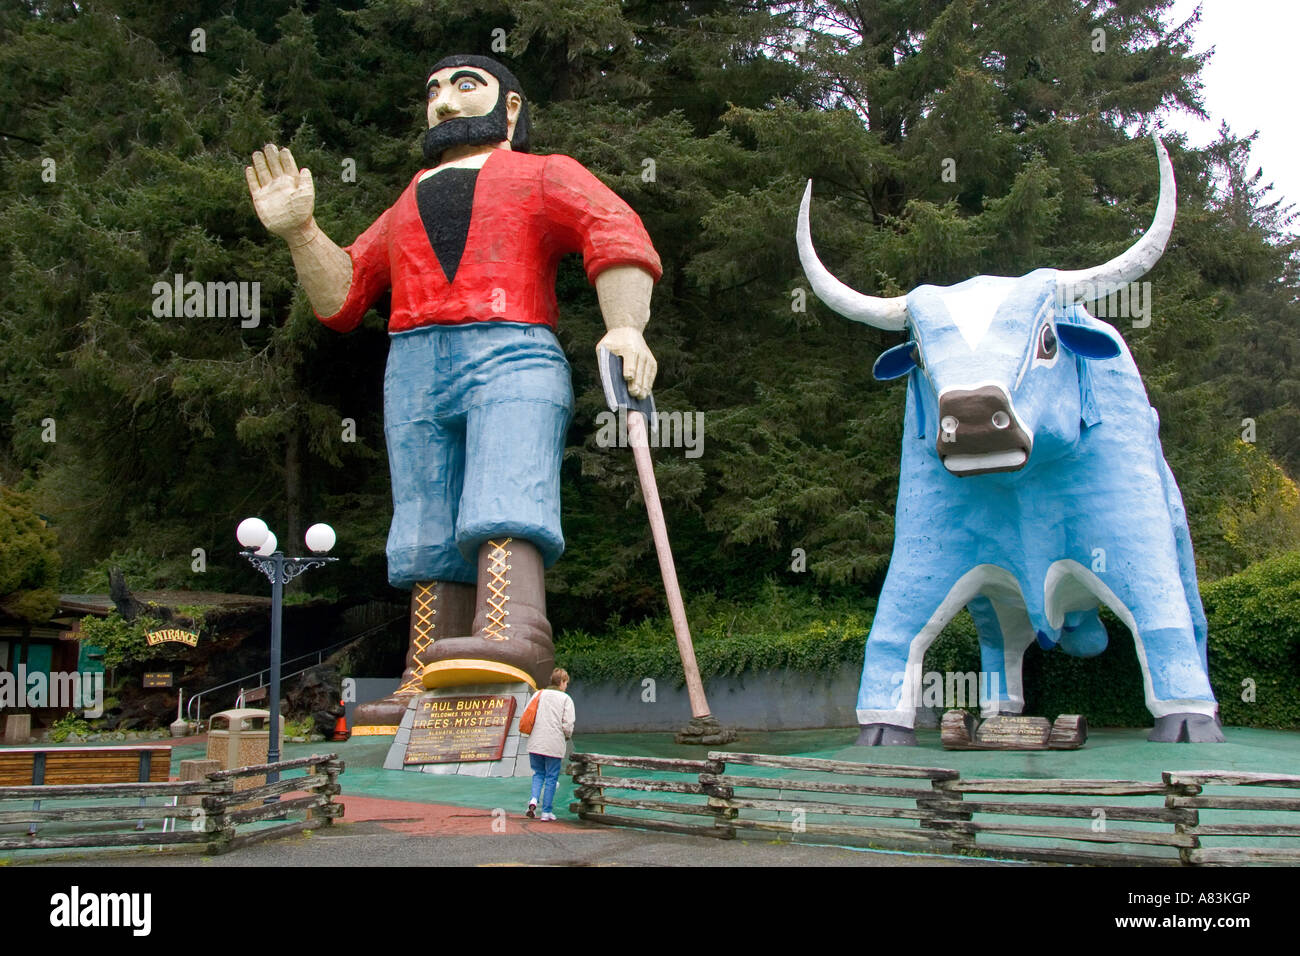 Giant statues of Paul Bunyan and Babe the Blue Ox guard the entrance to the Trees of Mystery at Klamath California - Stock Image